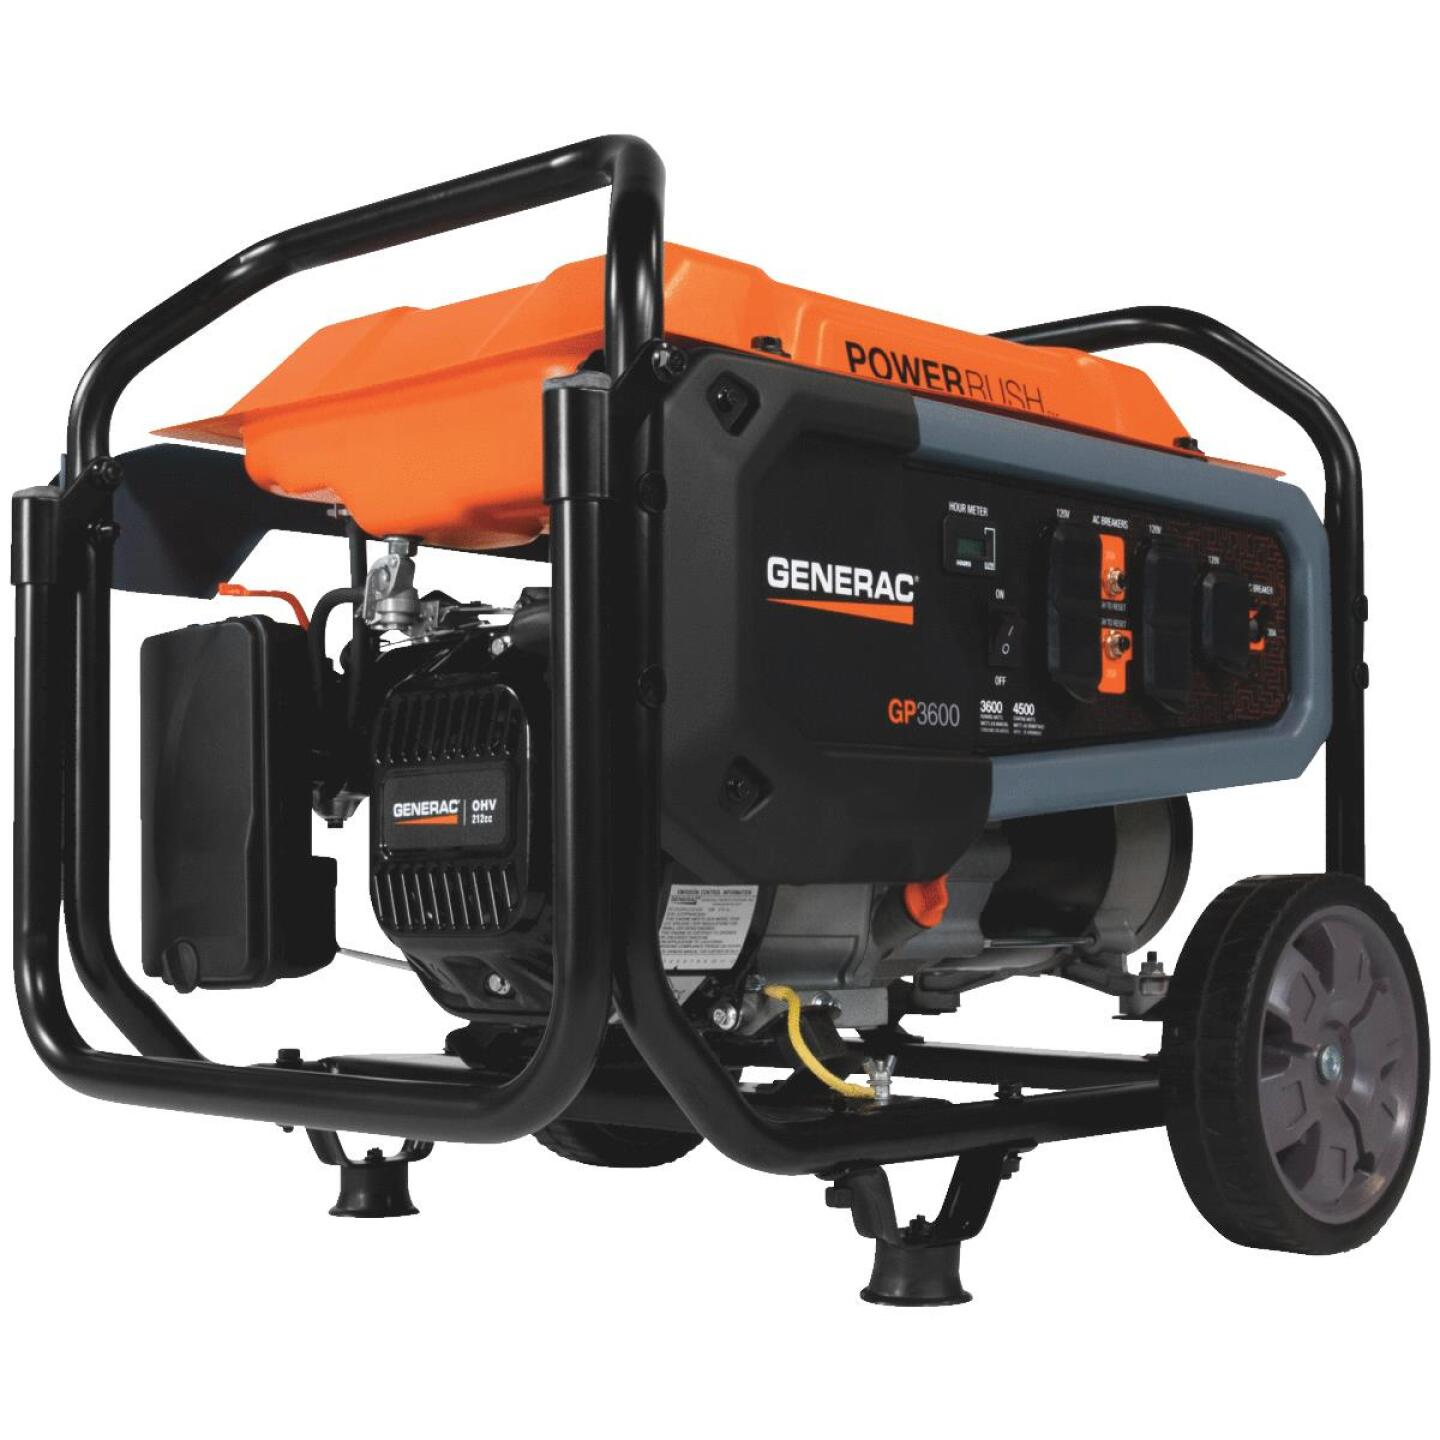 Generac 3600W Gasoline Powered Recoil Pull Start Portable Generator Image 1